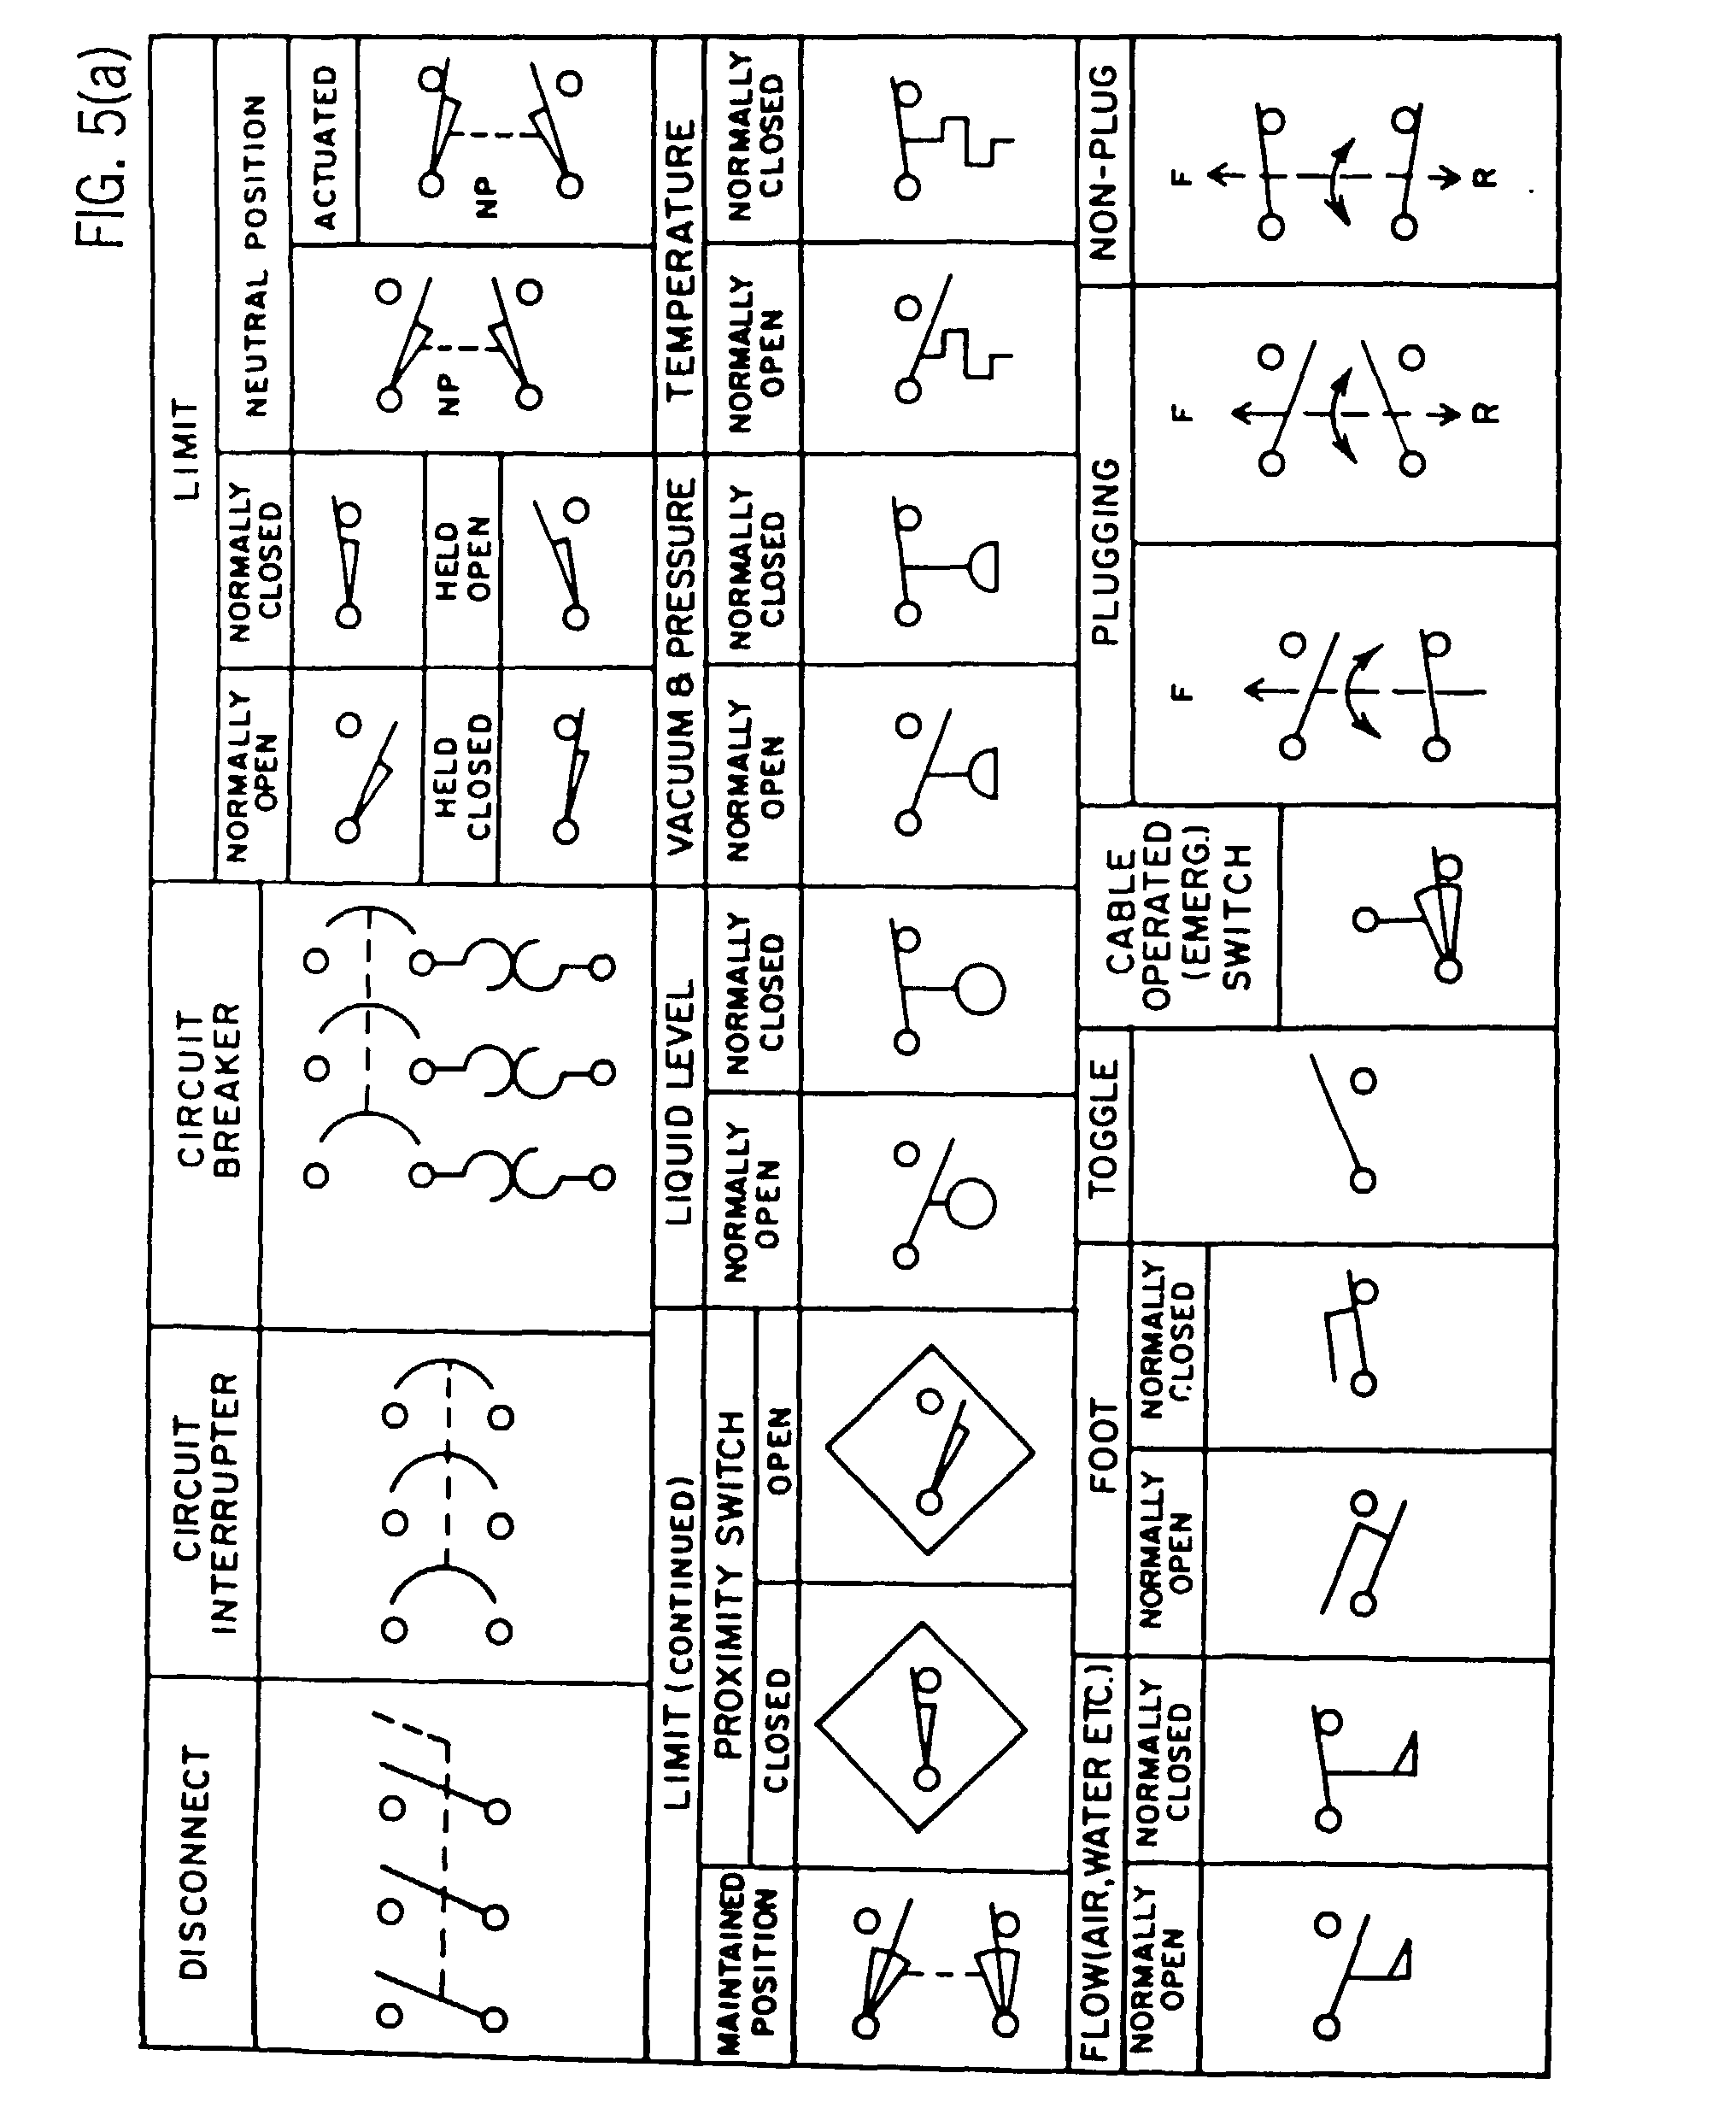 Thermal Overload Relay Wiring Diagram Patent Ep0718727b1 Industrial Controllers With Highly Circuit Contactor